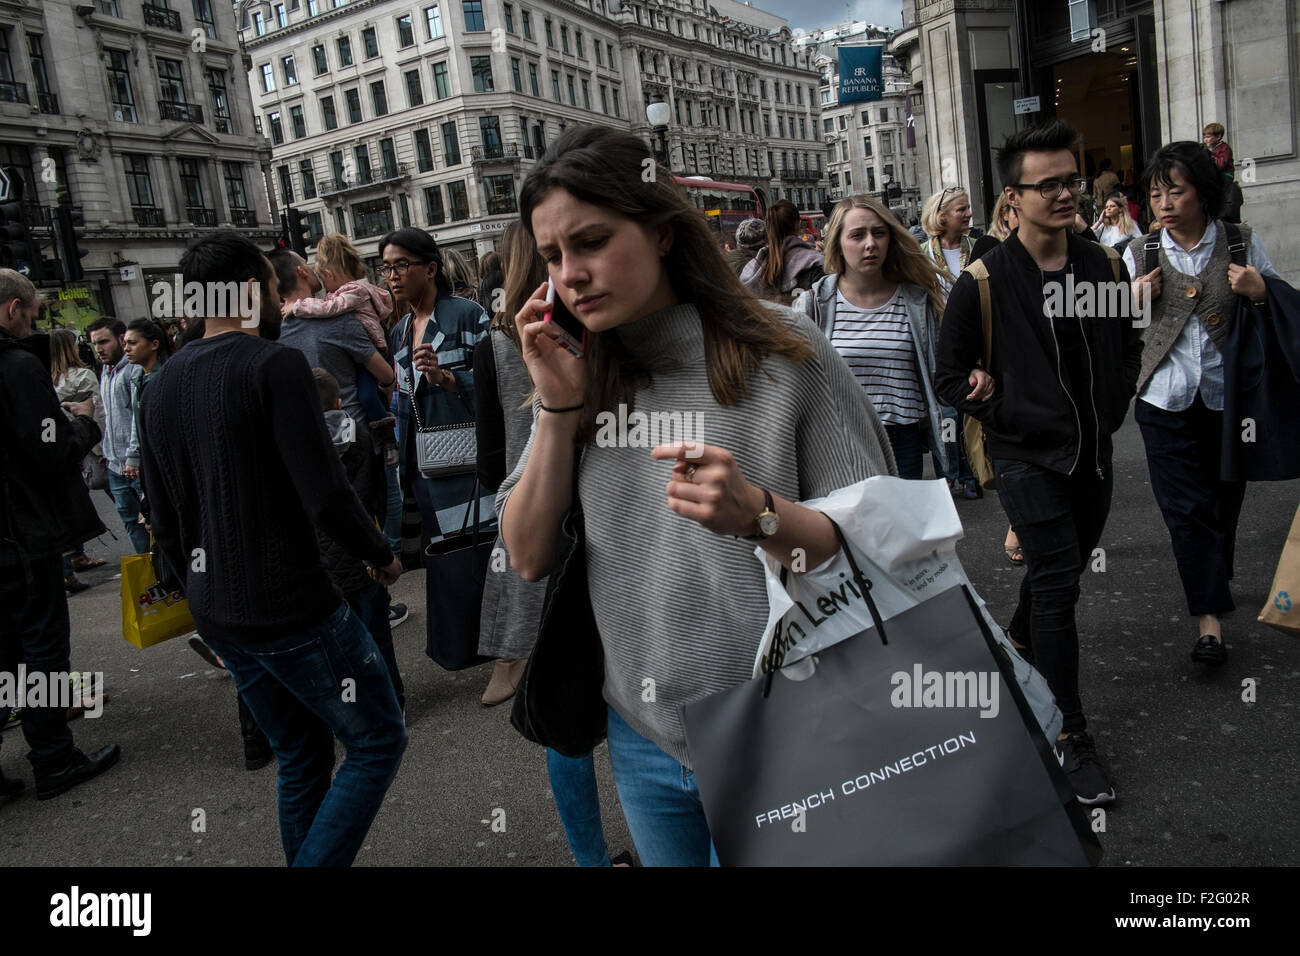 Shoppers on Regent Street, one of the main shopping streets in the West End of London. UK - Stock Image